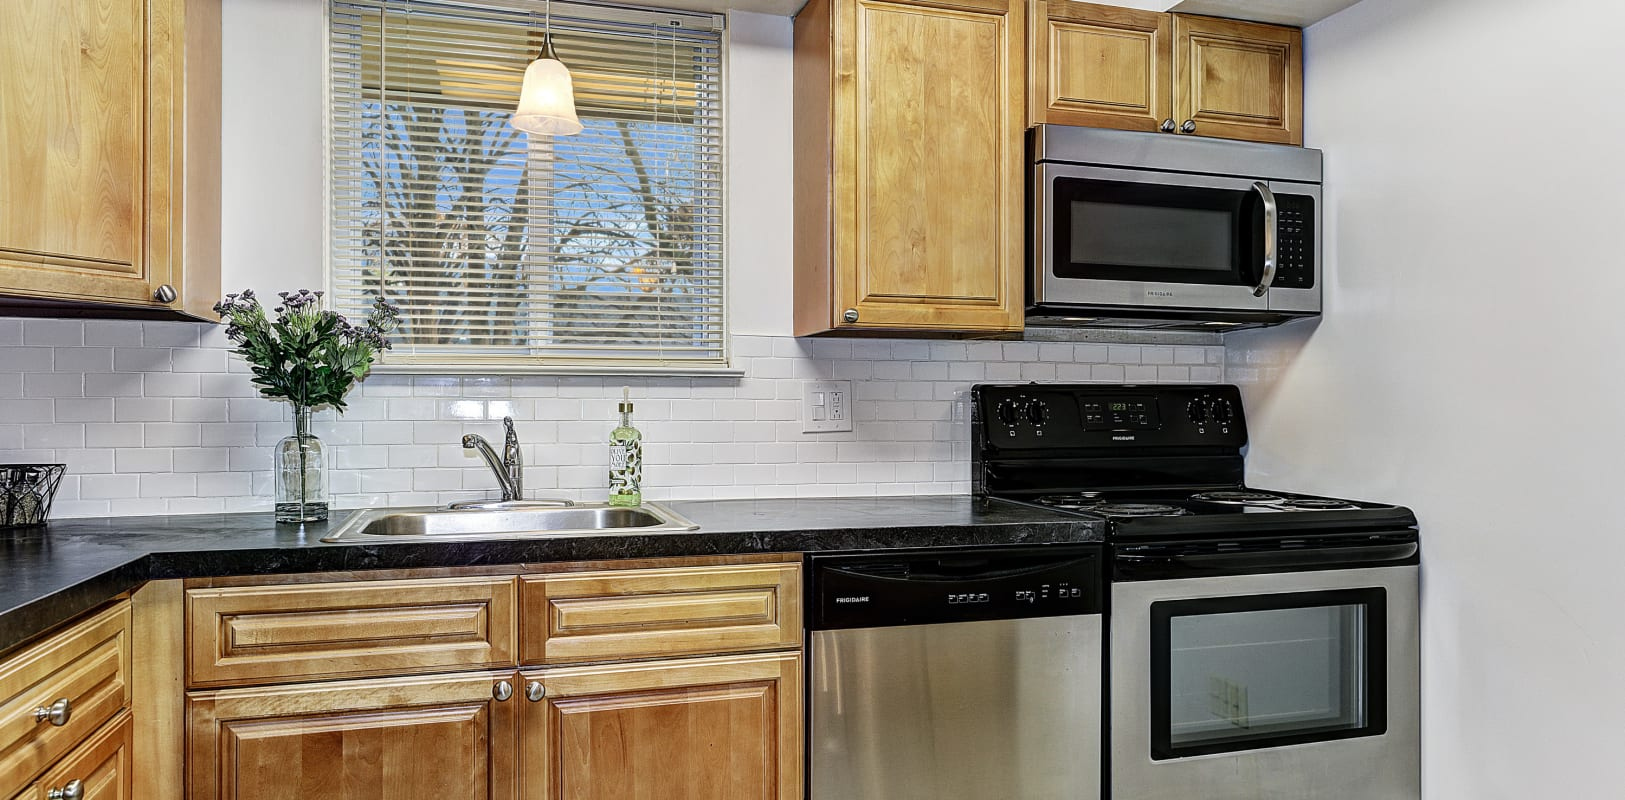 Kitchen with nice light wood style cabinets at Penn Crest Apartments in Allentown, Pennsylvania